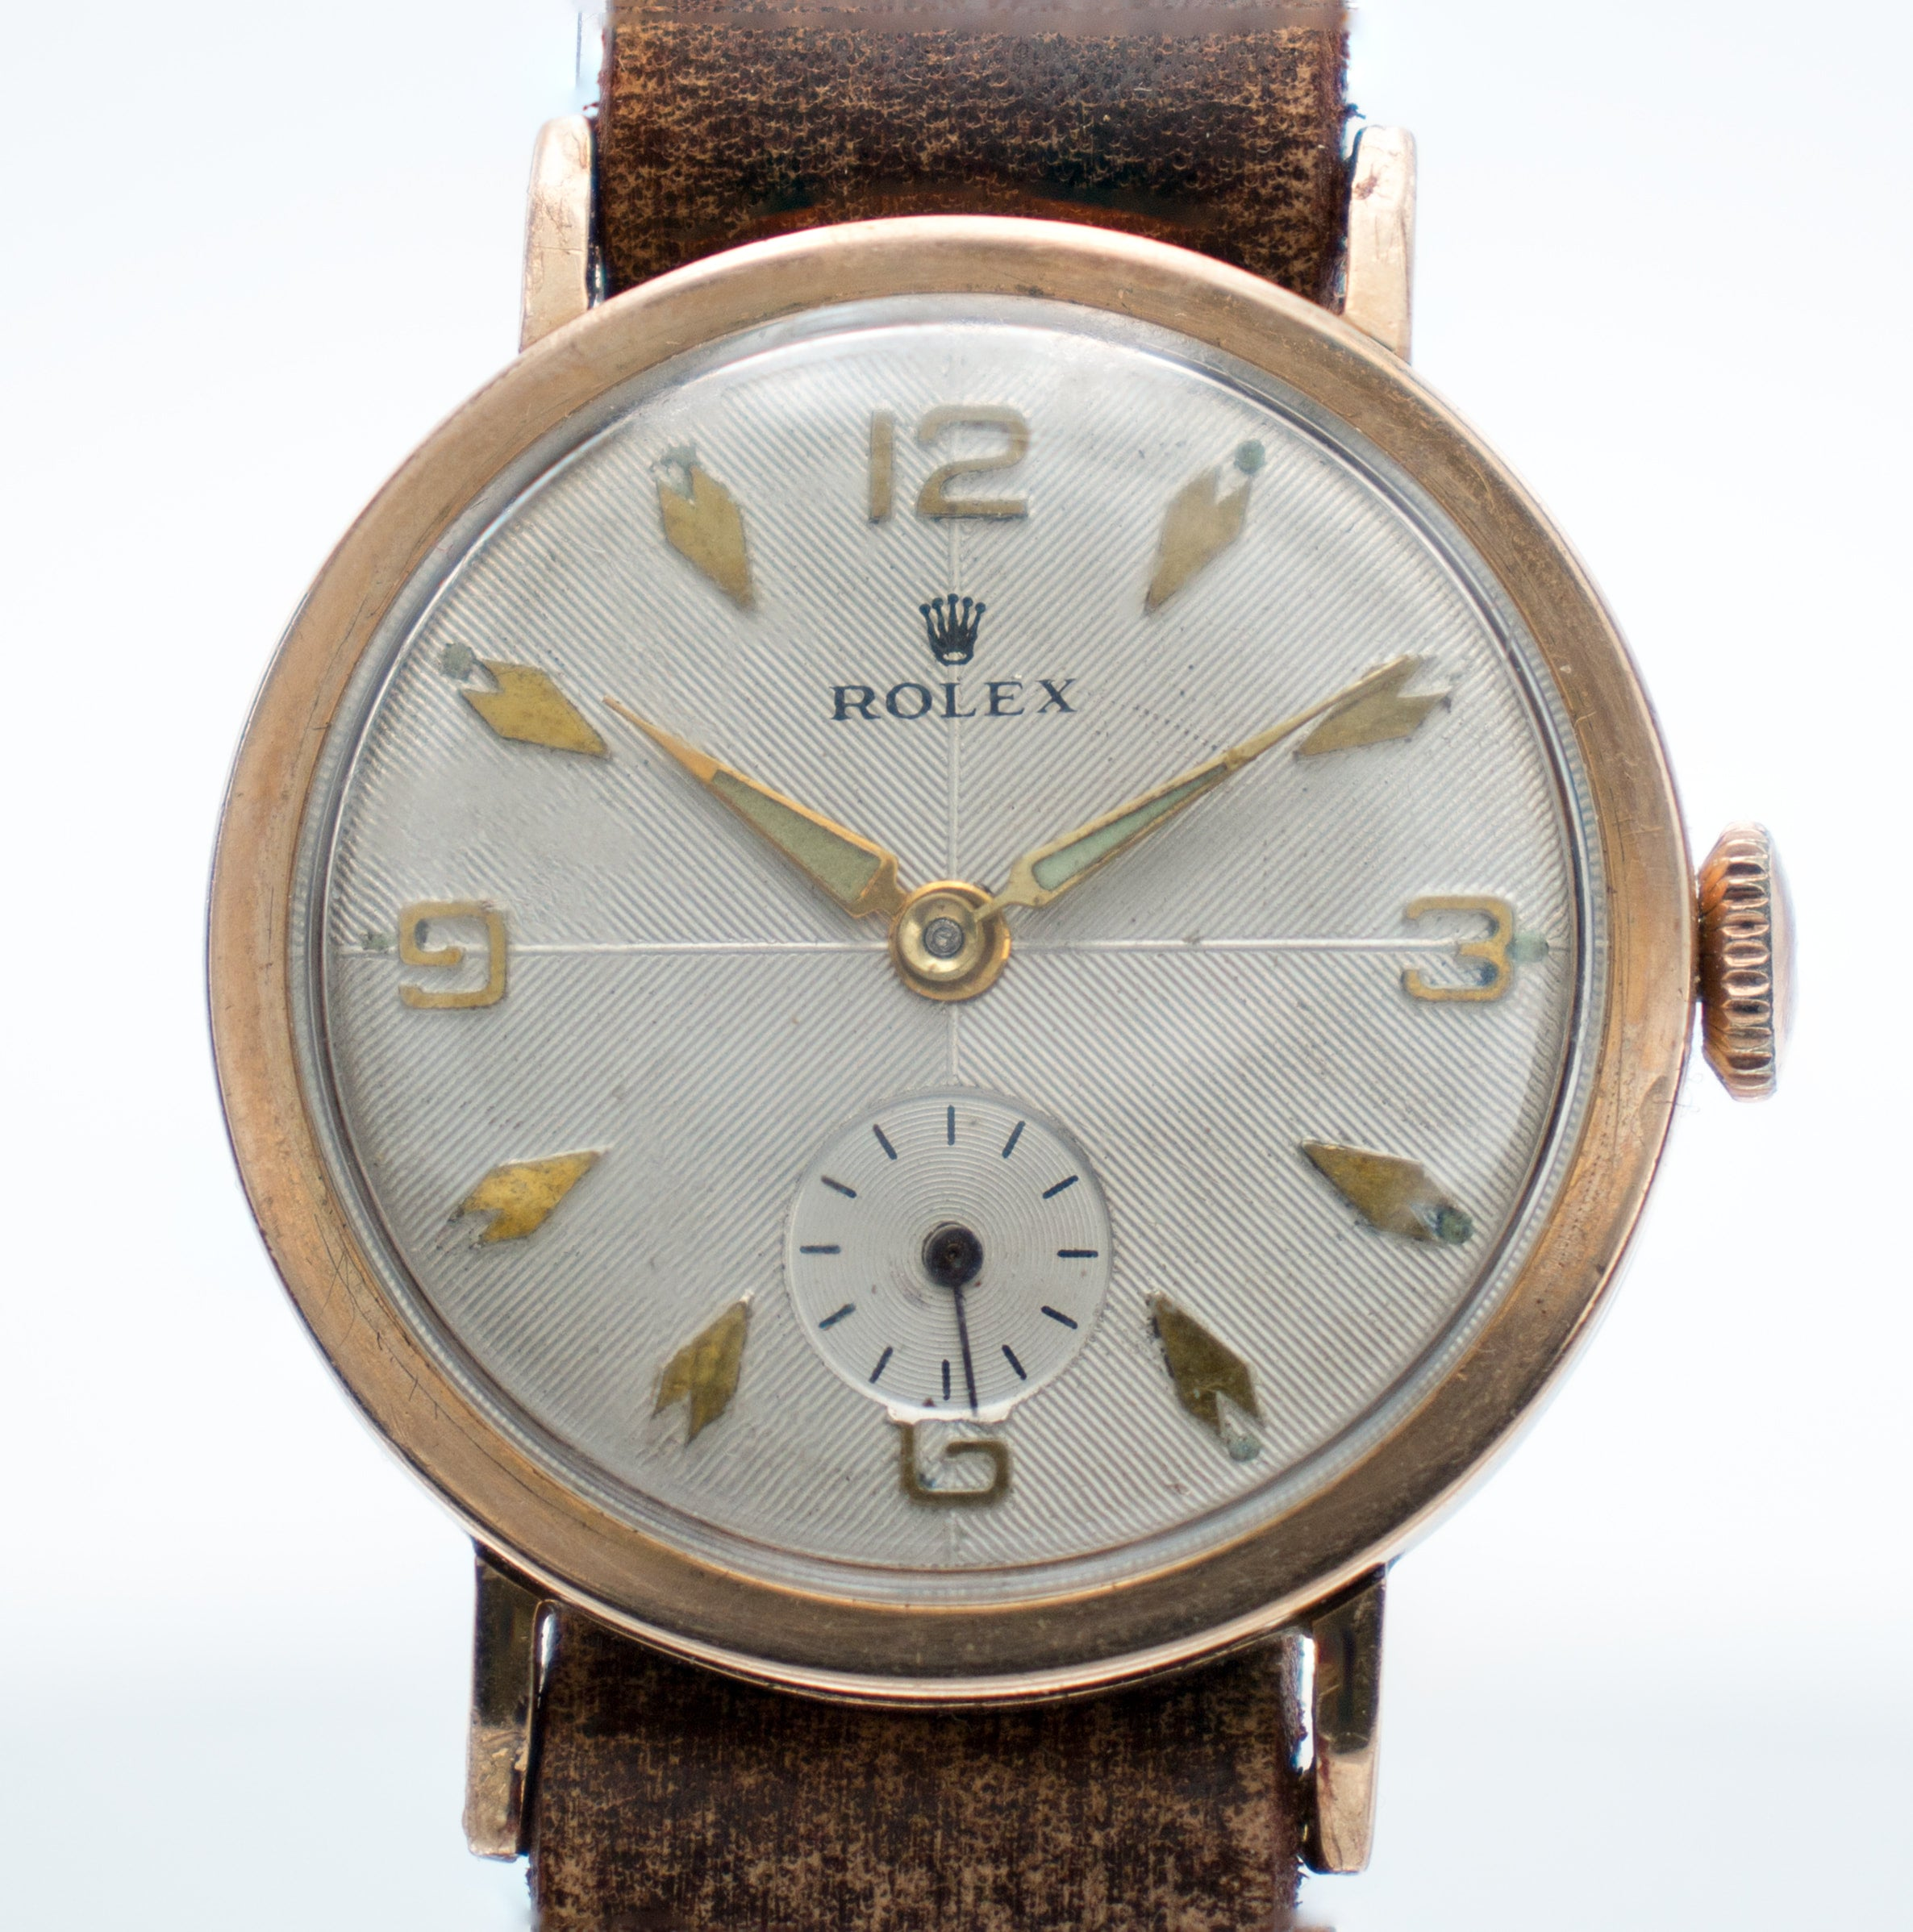 Rolex Antique Military Trench Watch Guilloche Dial - Rose Gold - WWI & WWII Era